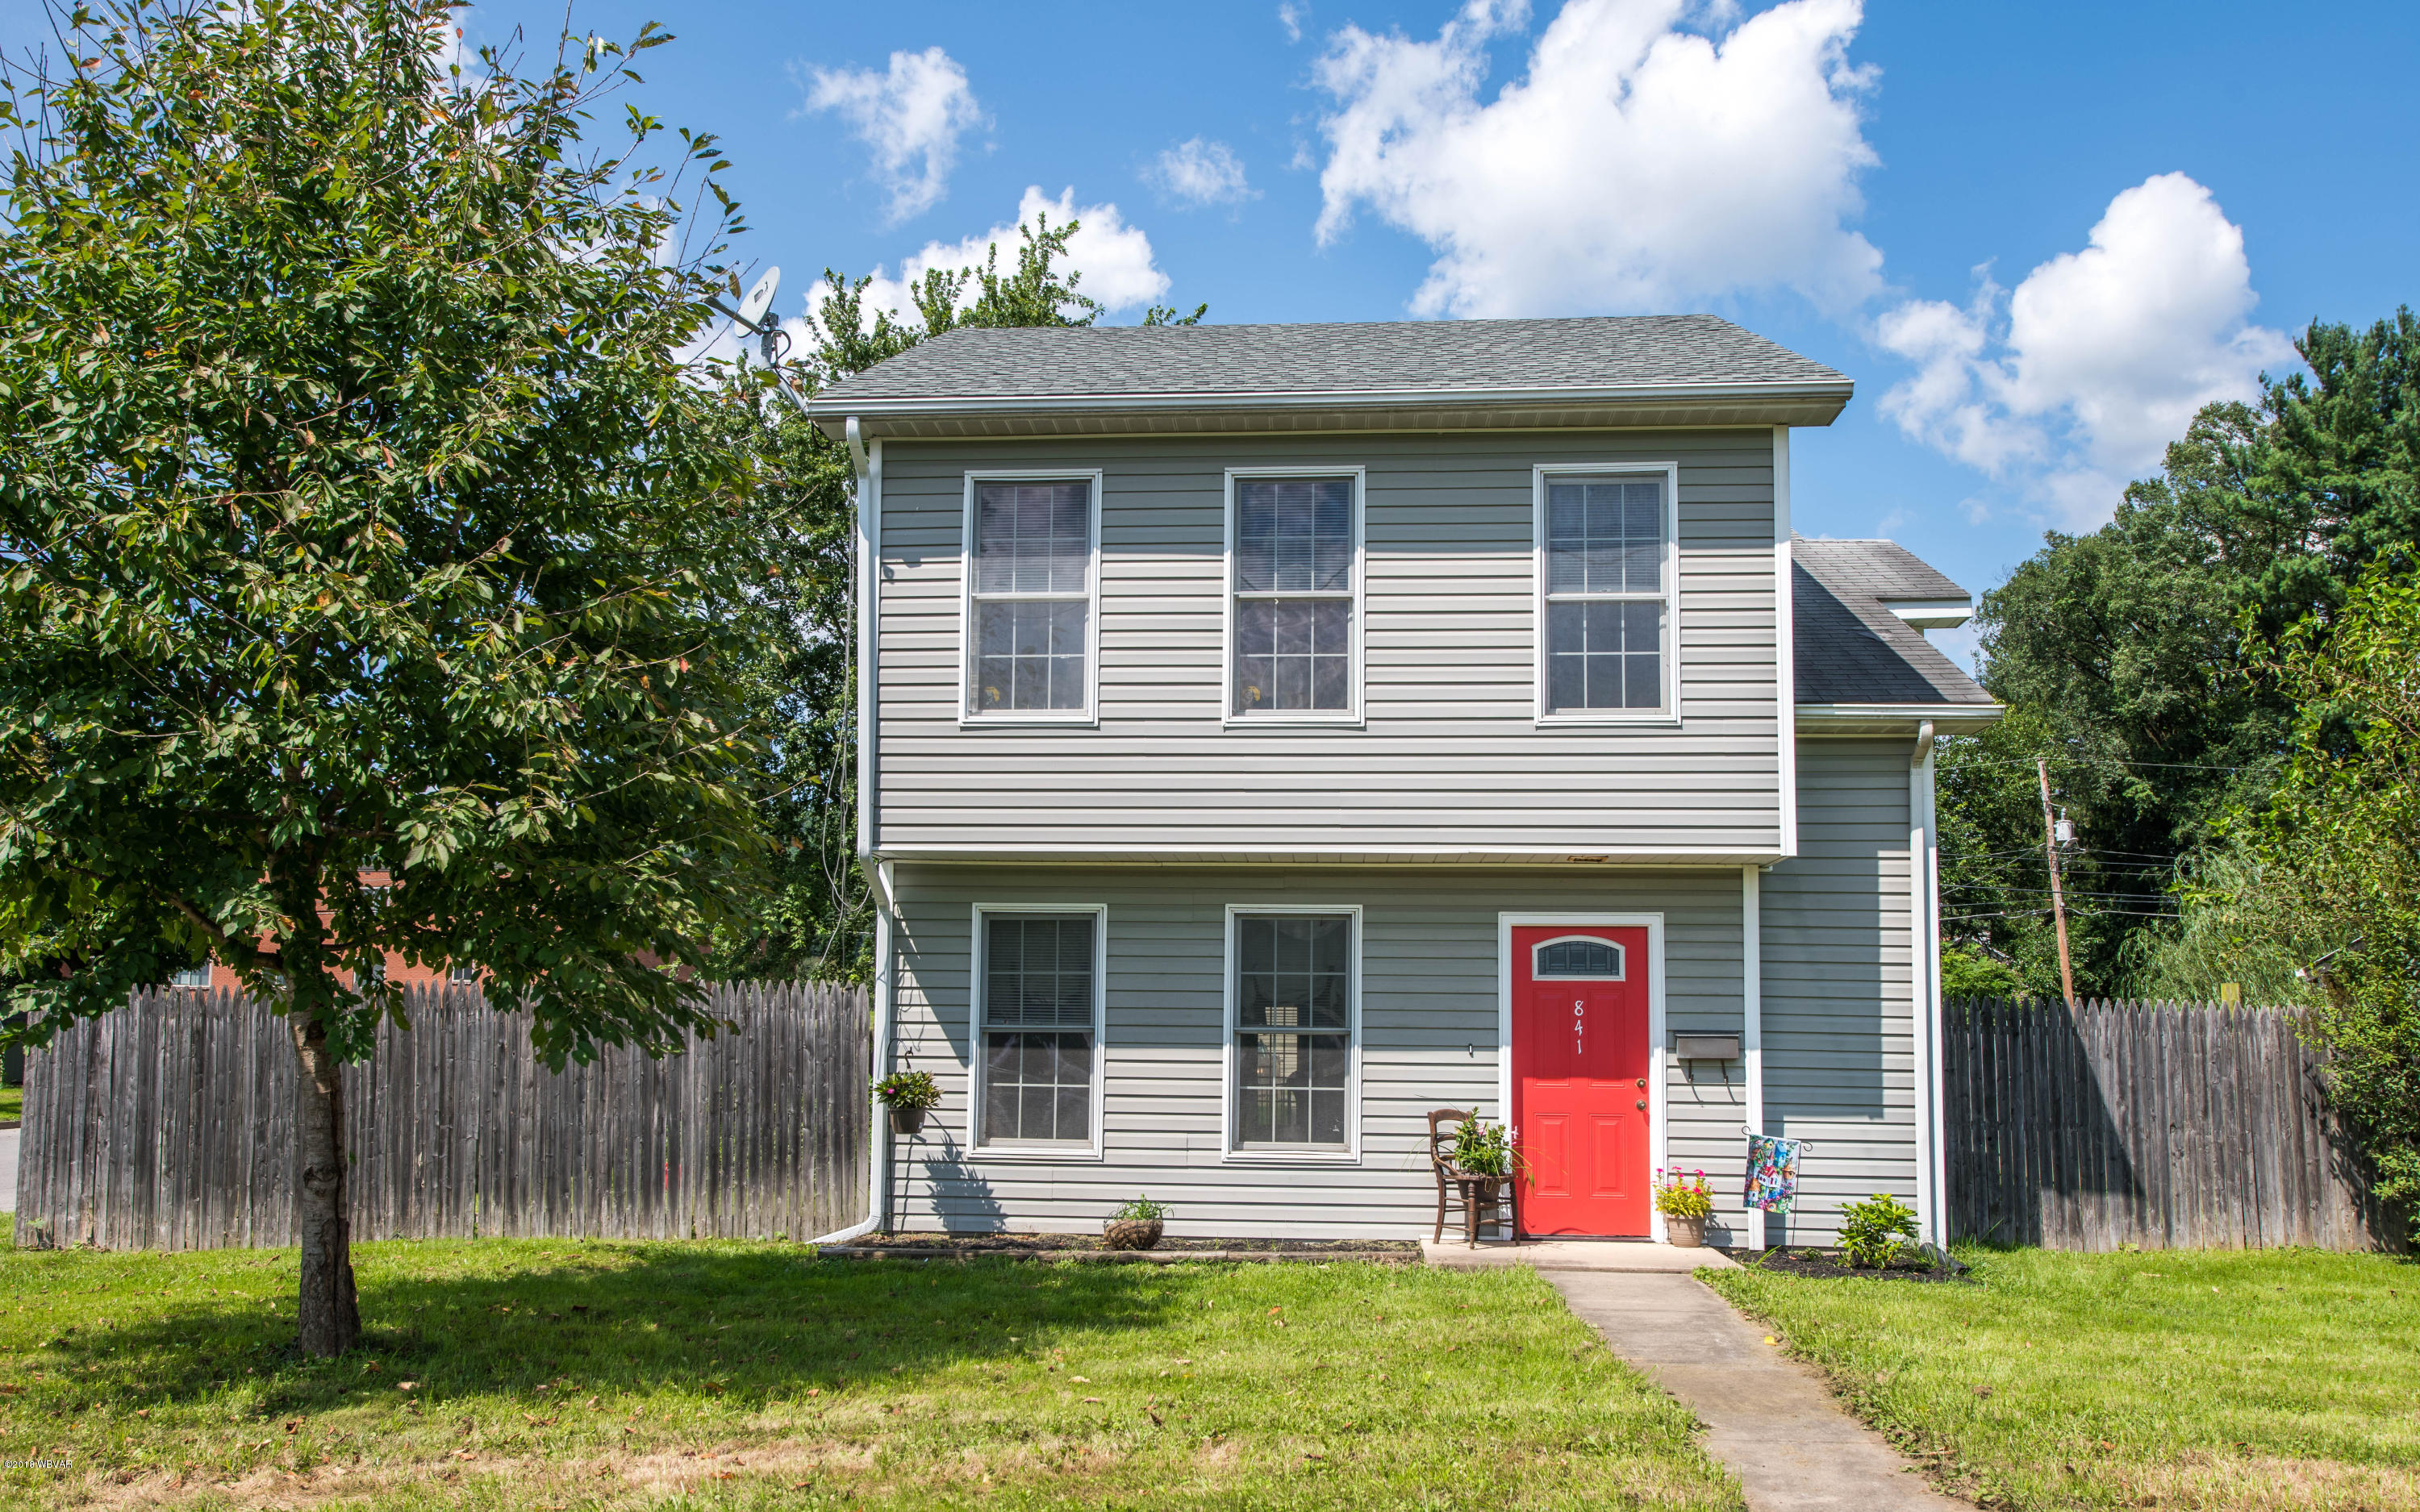 841 MAIN STREET,Lock Haven,PA 17745,3 Bedrooms Bedrooms,1 BathroomBathrooms,Residential,MAIN,WB-86185